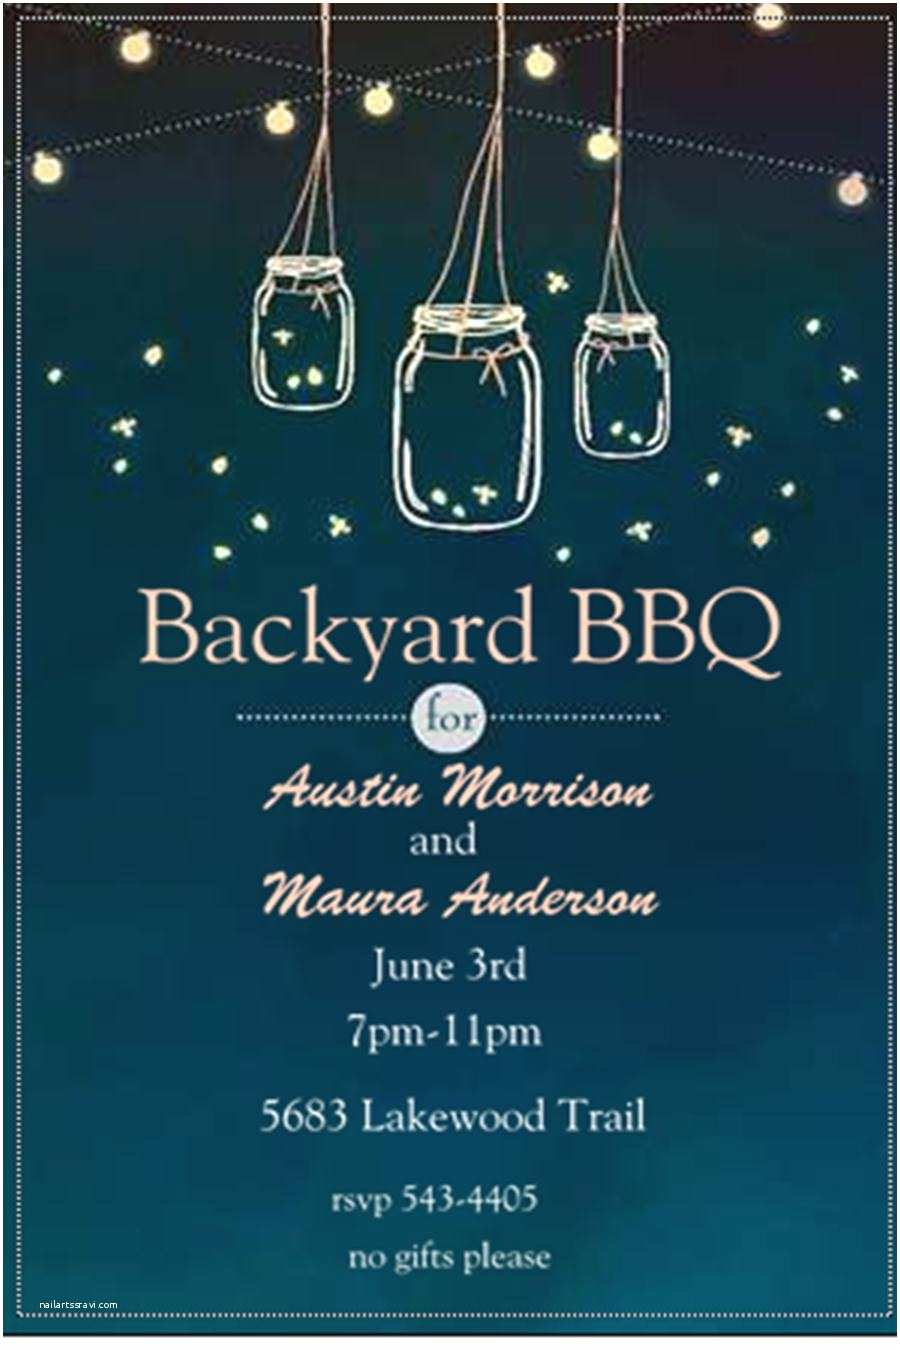 After Wedding Party Invitations Engagement Barbecue I Do Bbq Party Invitations New